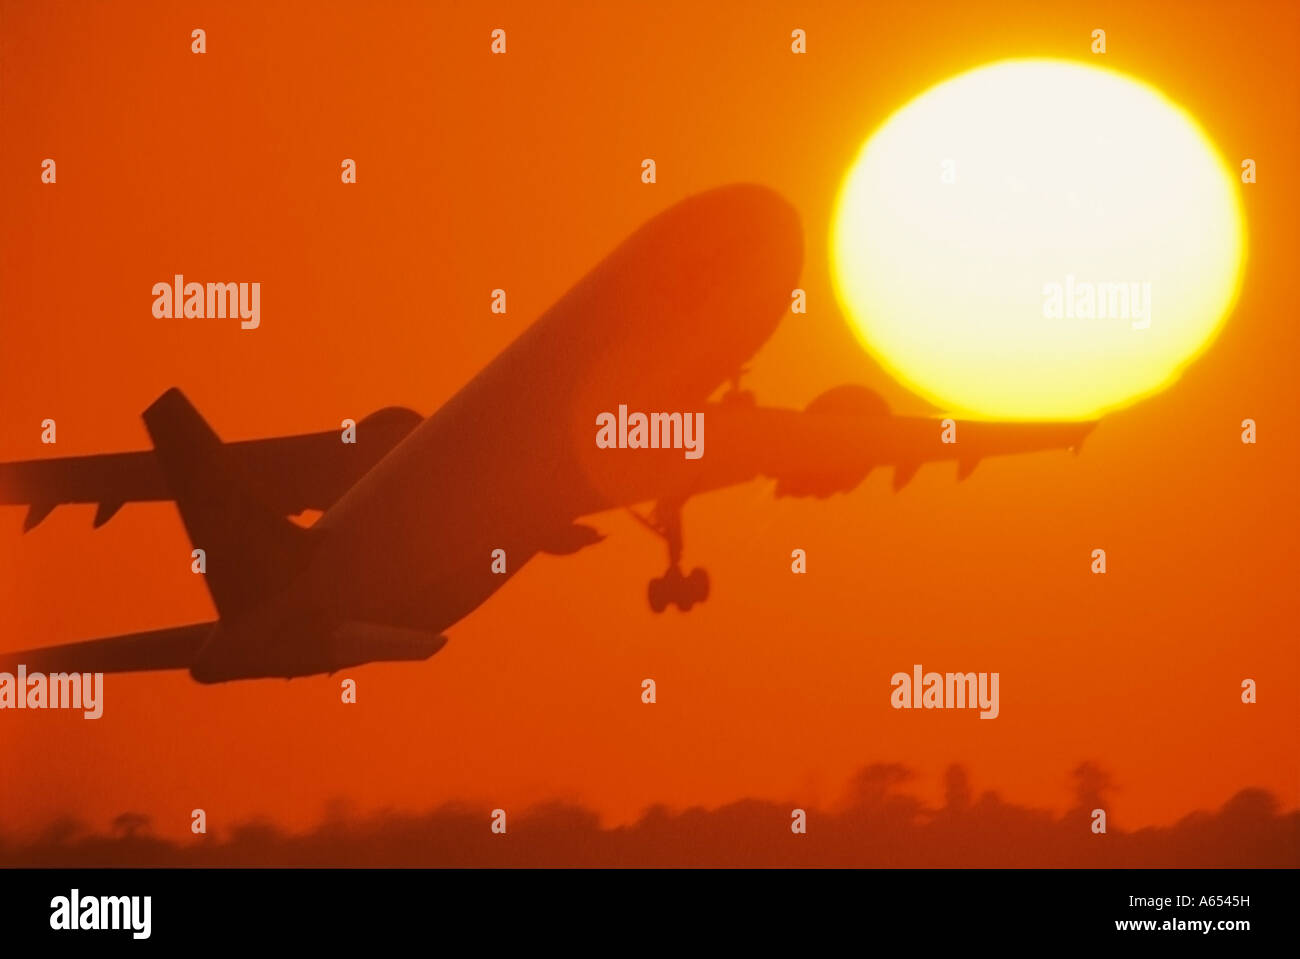 Plane taking off into the sunset - Stock Image